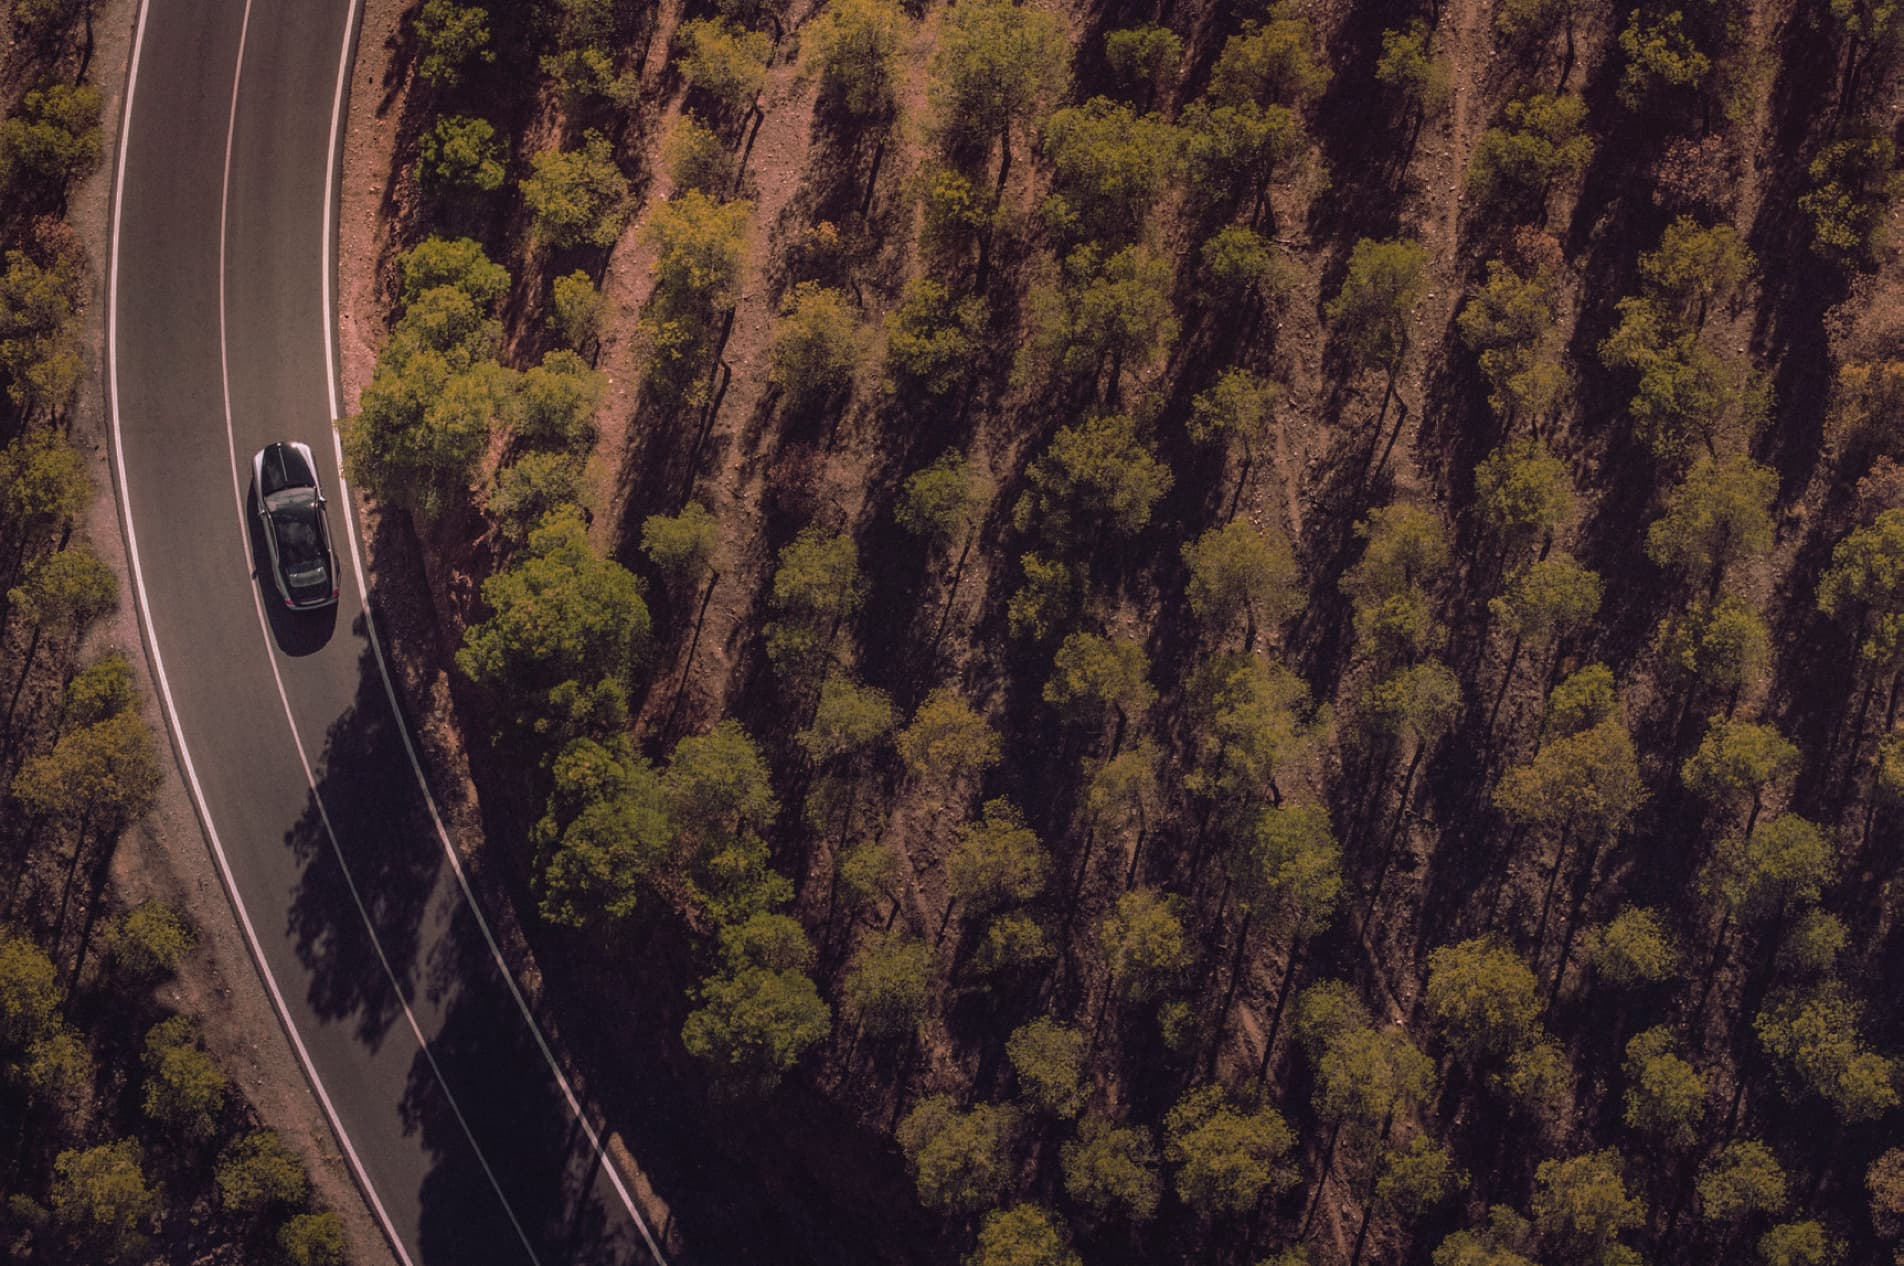 Aerial shot of Rolls-Royce motor car driving next to woods